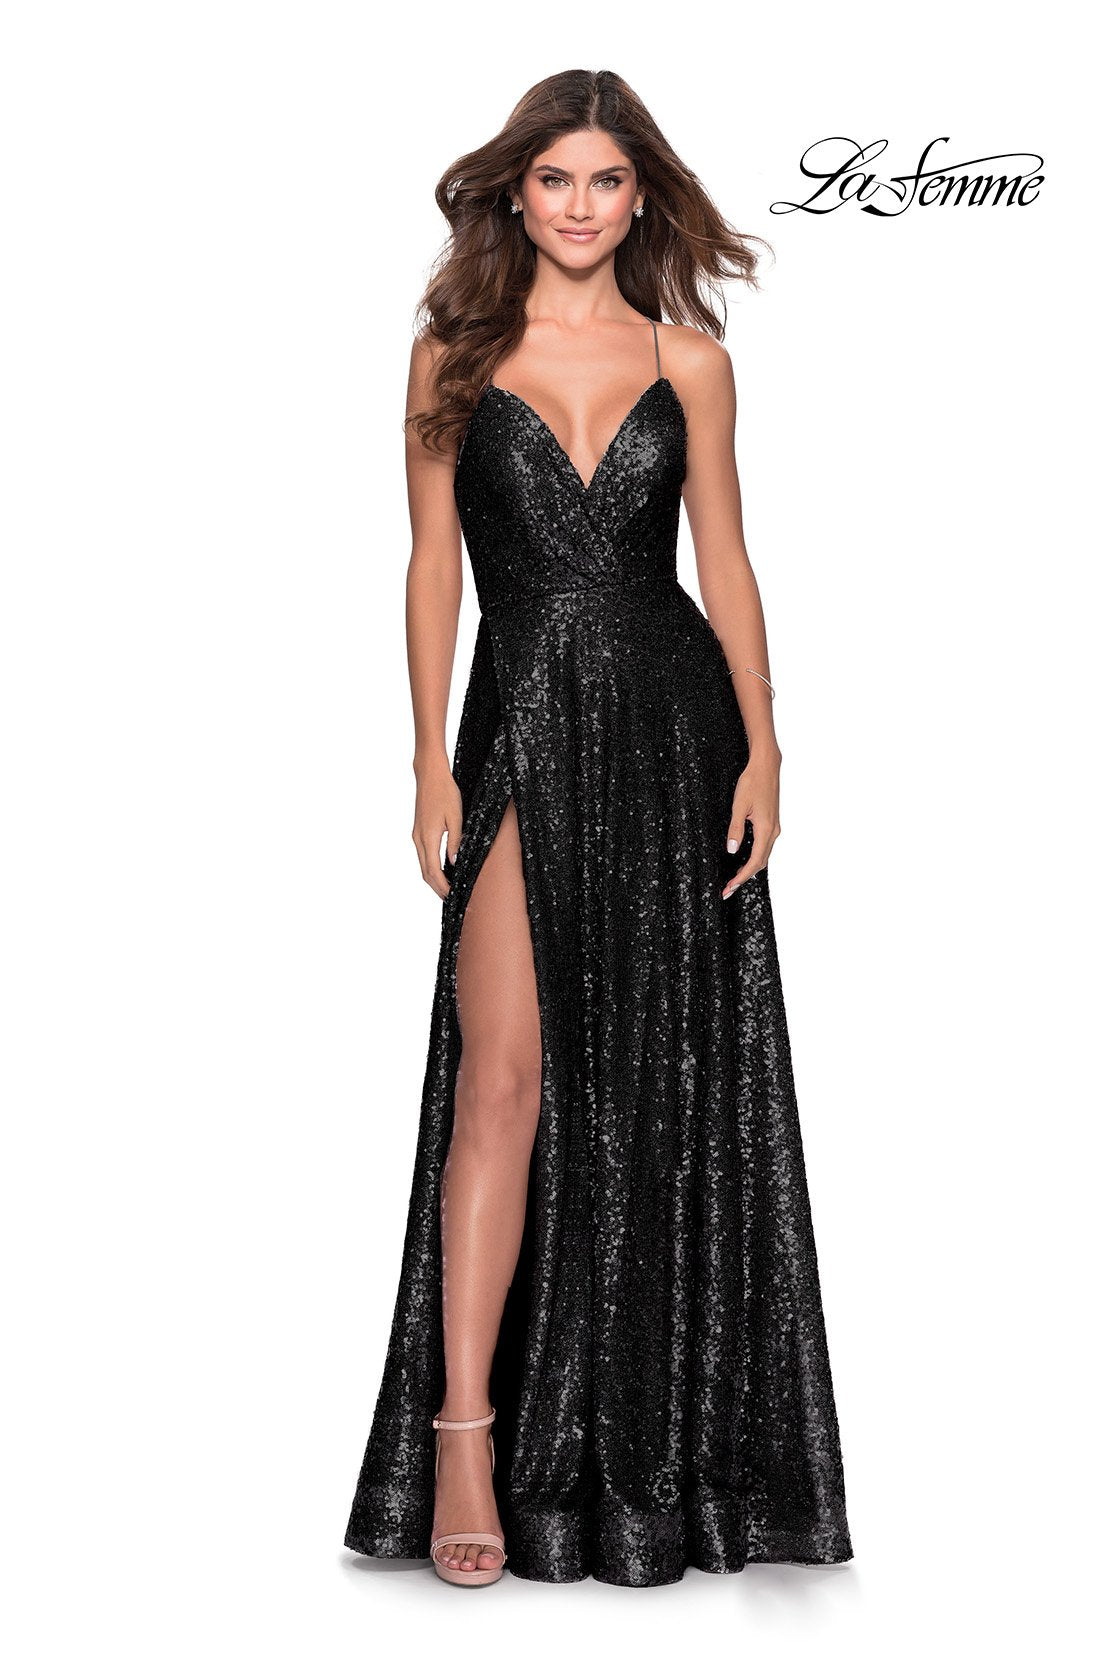 La Femme 28276 prom dress images.  La Femme 28276 is available in these colors: Black, Lavender Gray, Mint, Navy, Rose Gold.